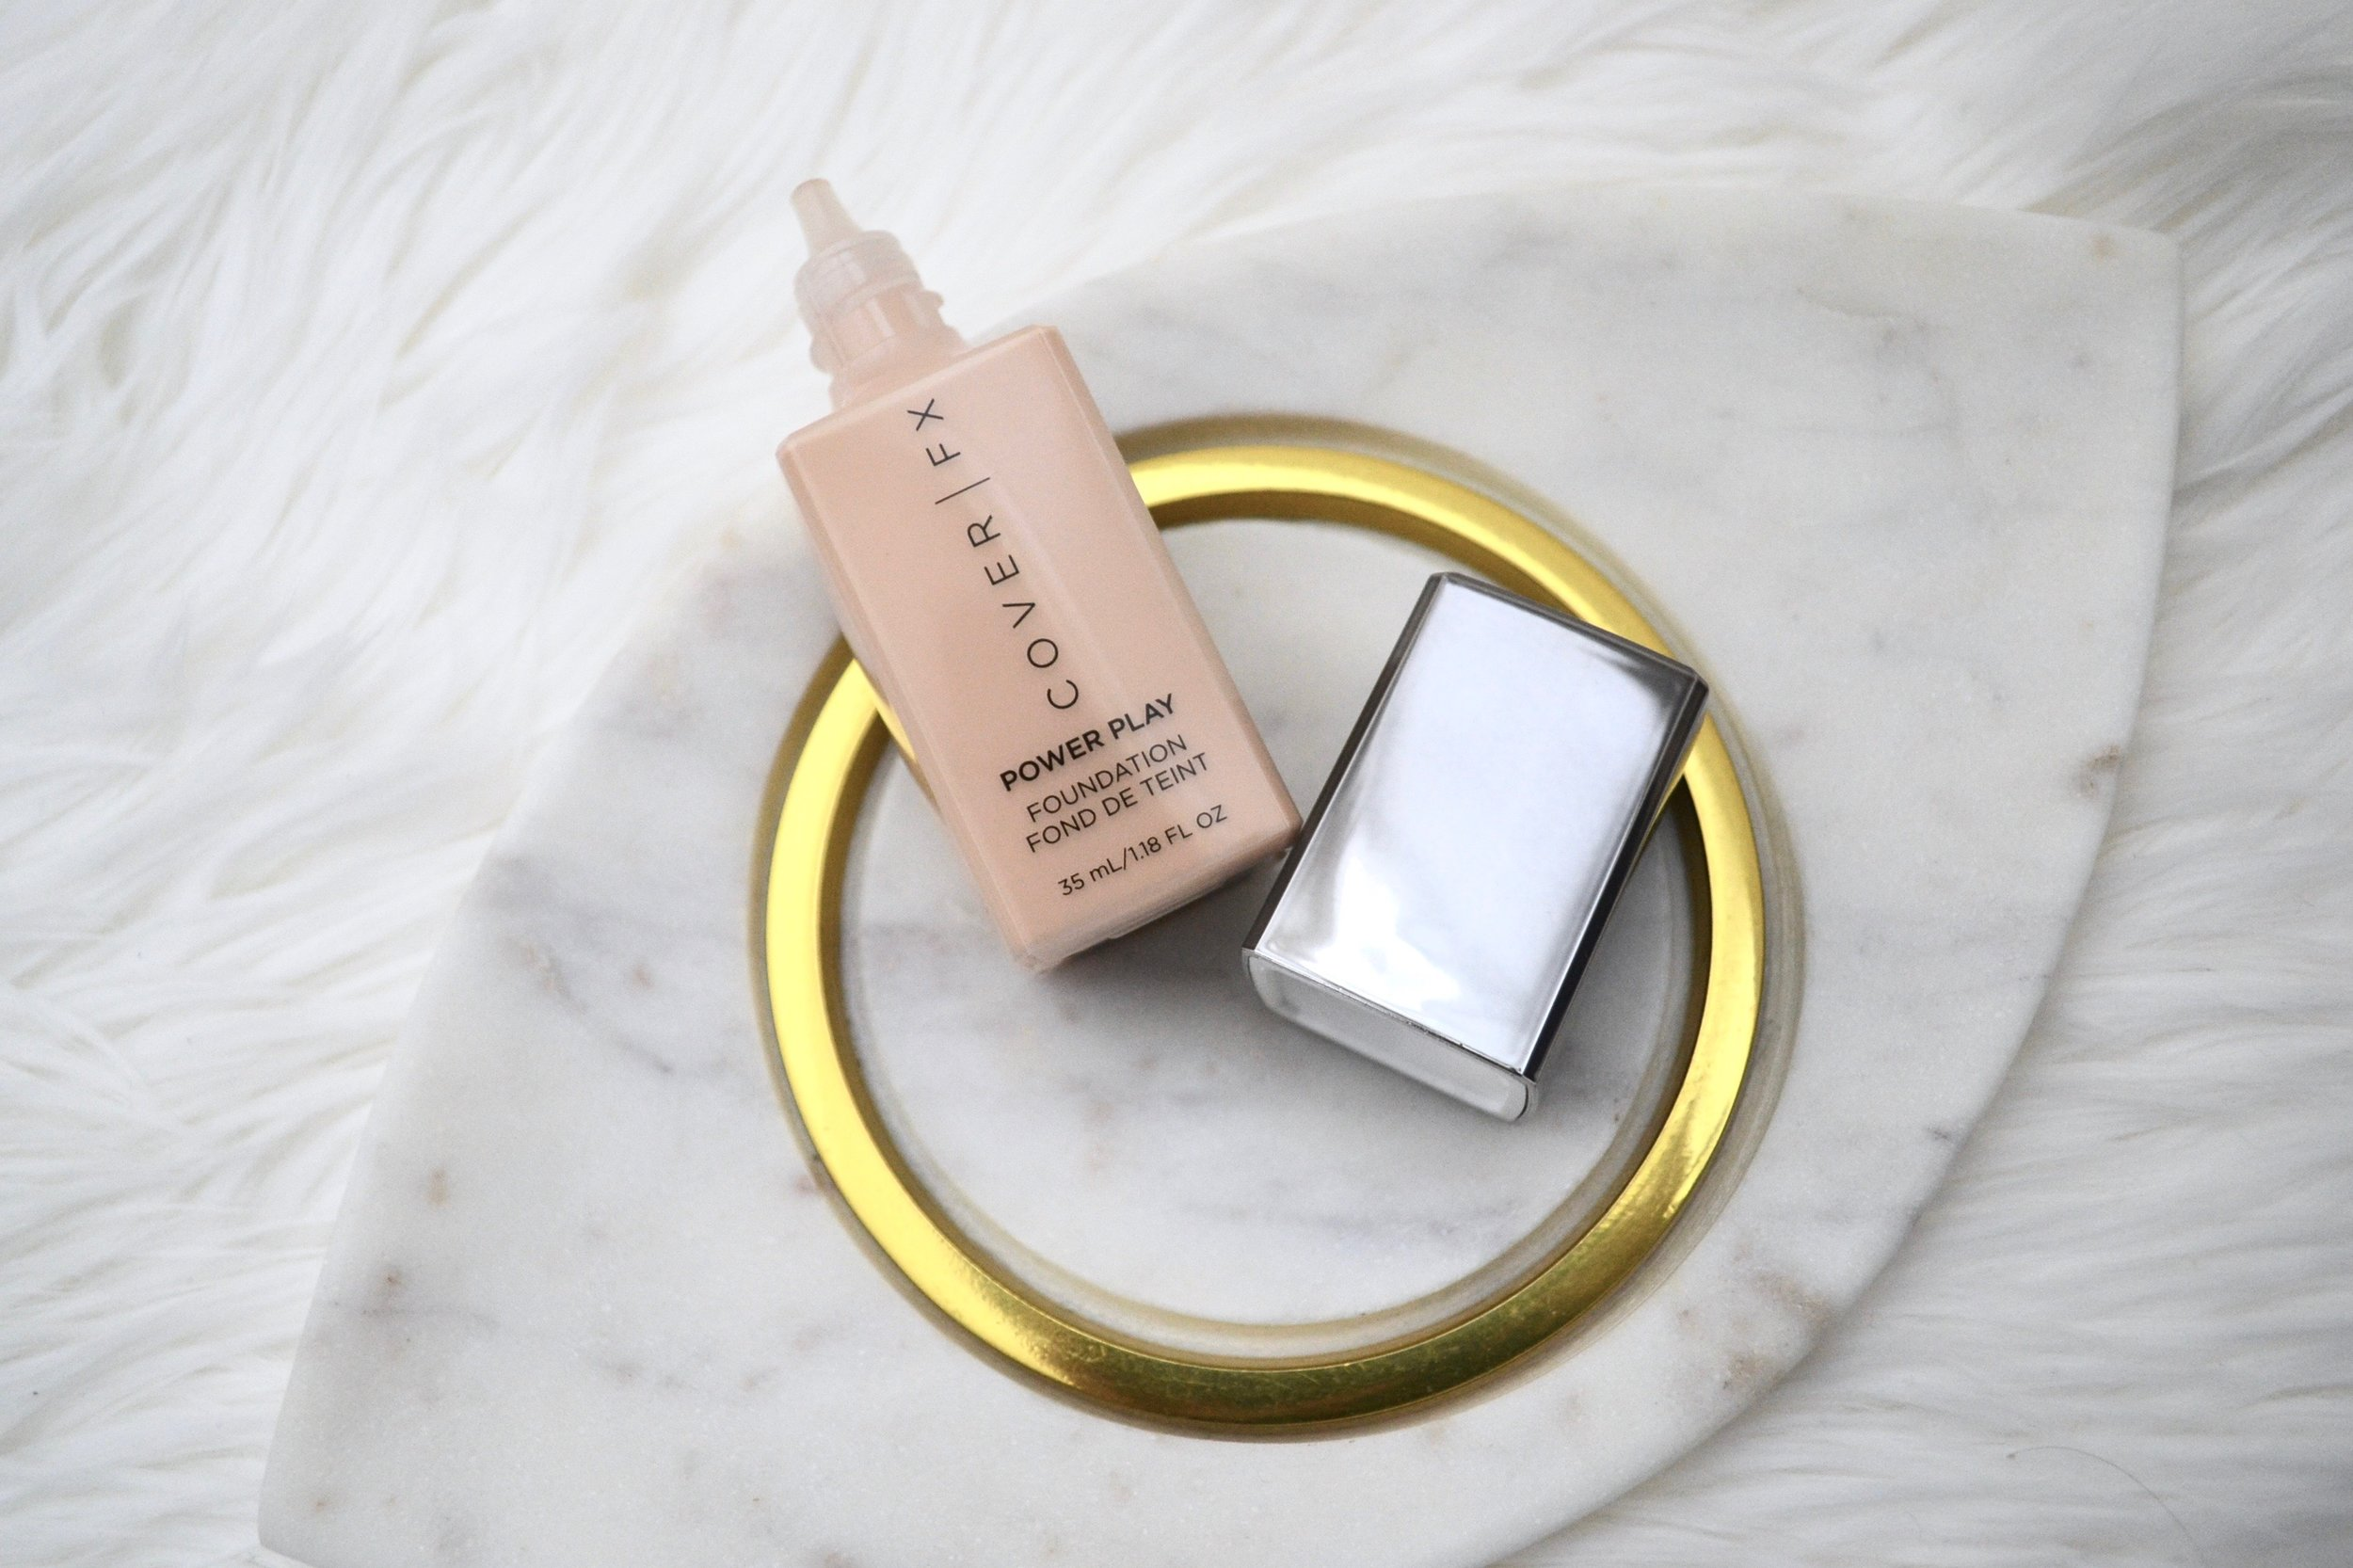 Cover FX Power Play Foundation - Full Review